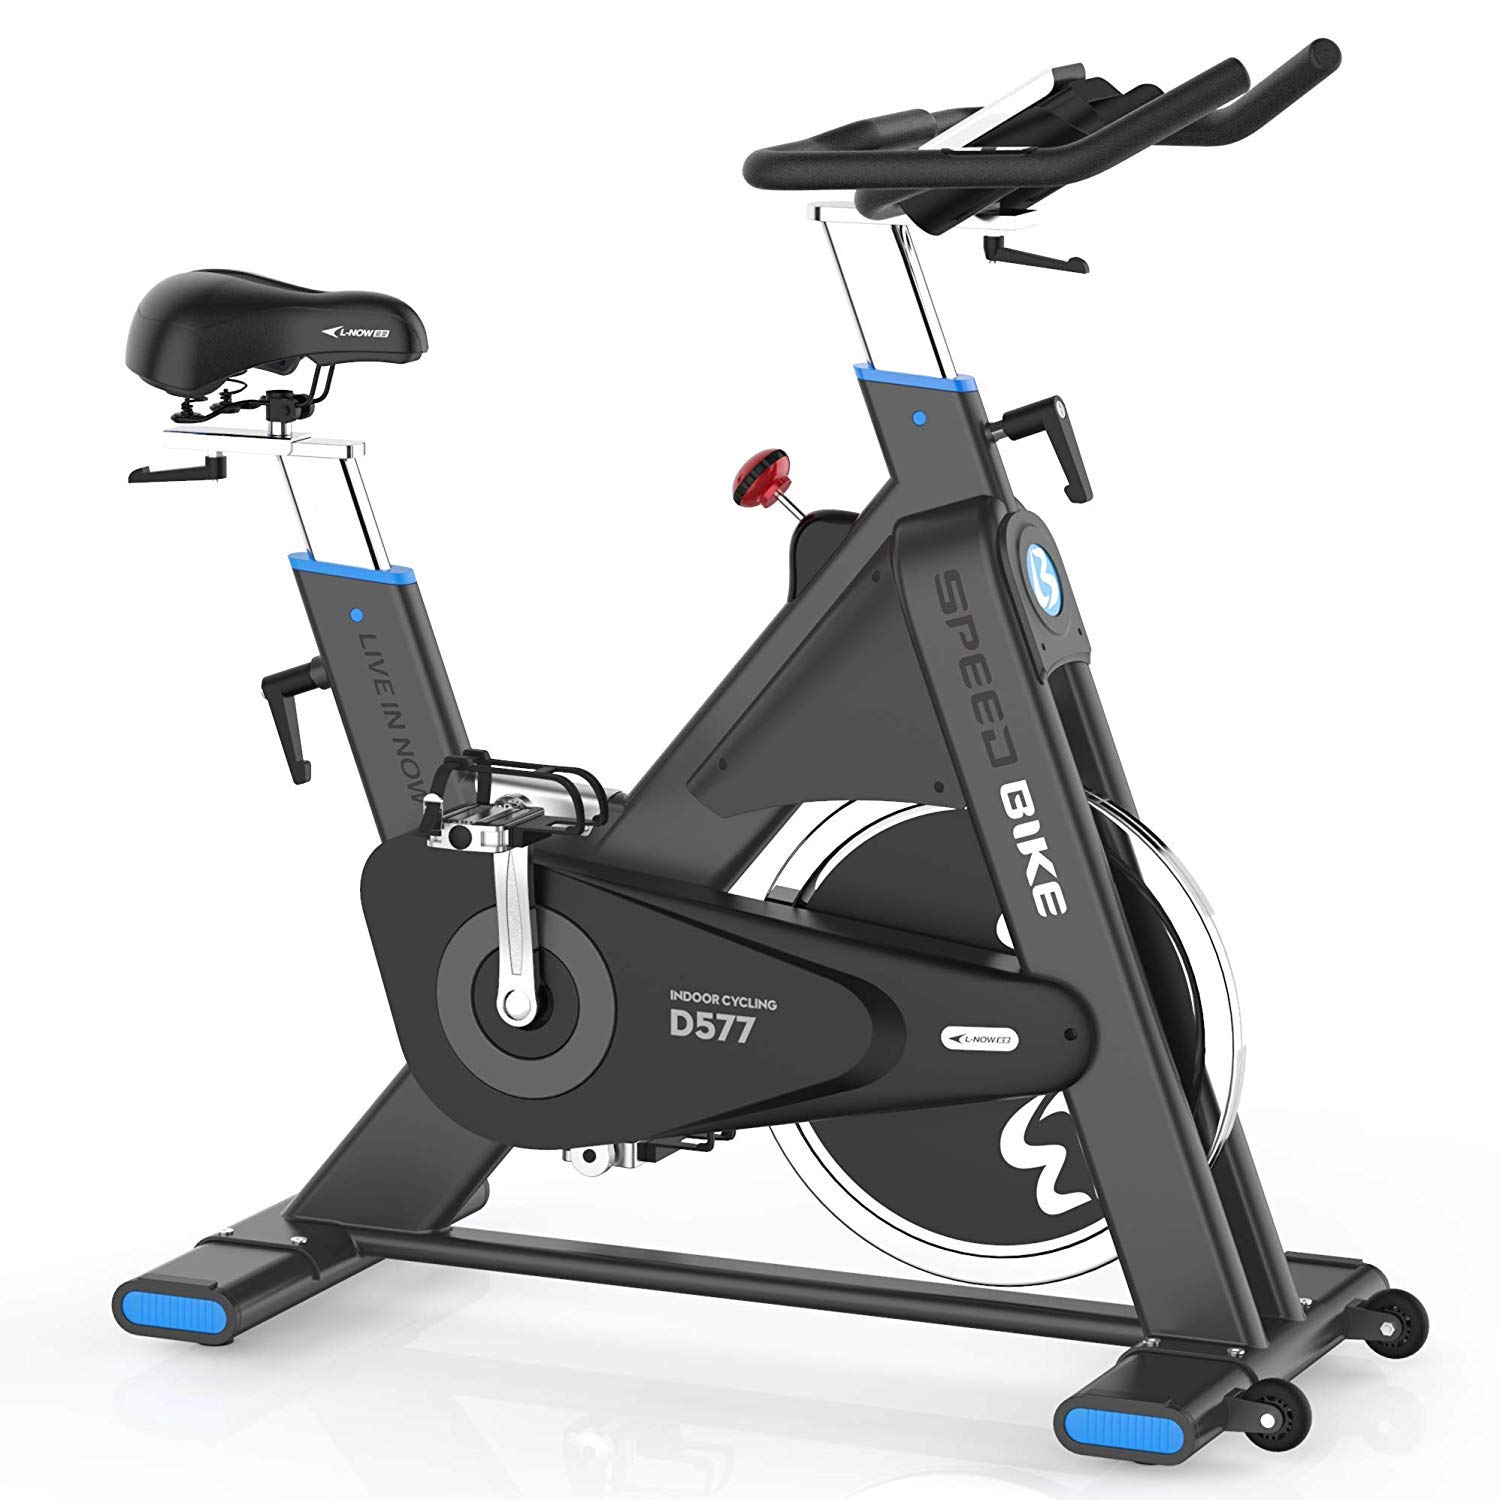 Drive Exercise Bike Stationary, Indoor Cycling Bike Trainer High Weight Capacity, Heavy Duty Flywheel with Commercial Standard